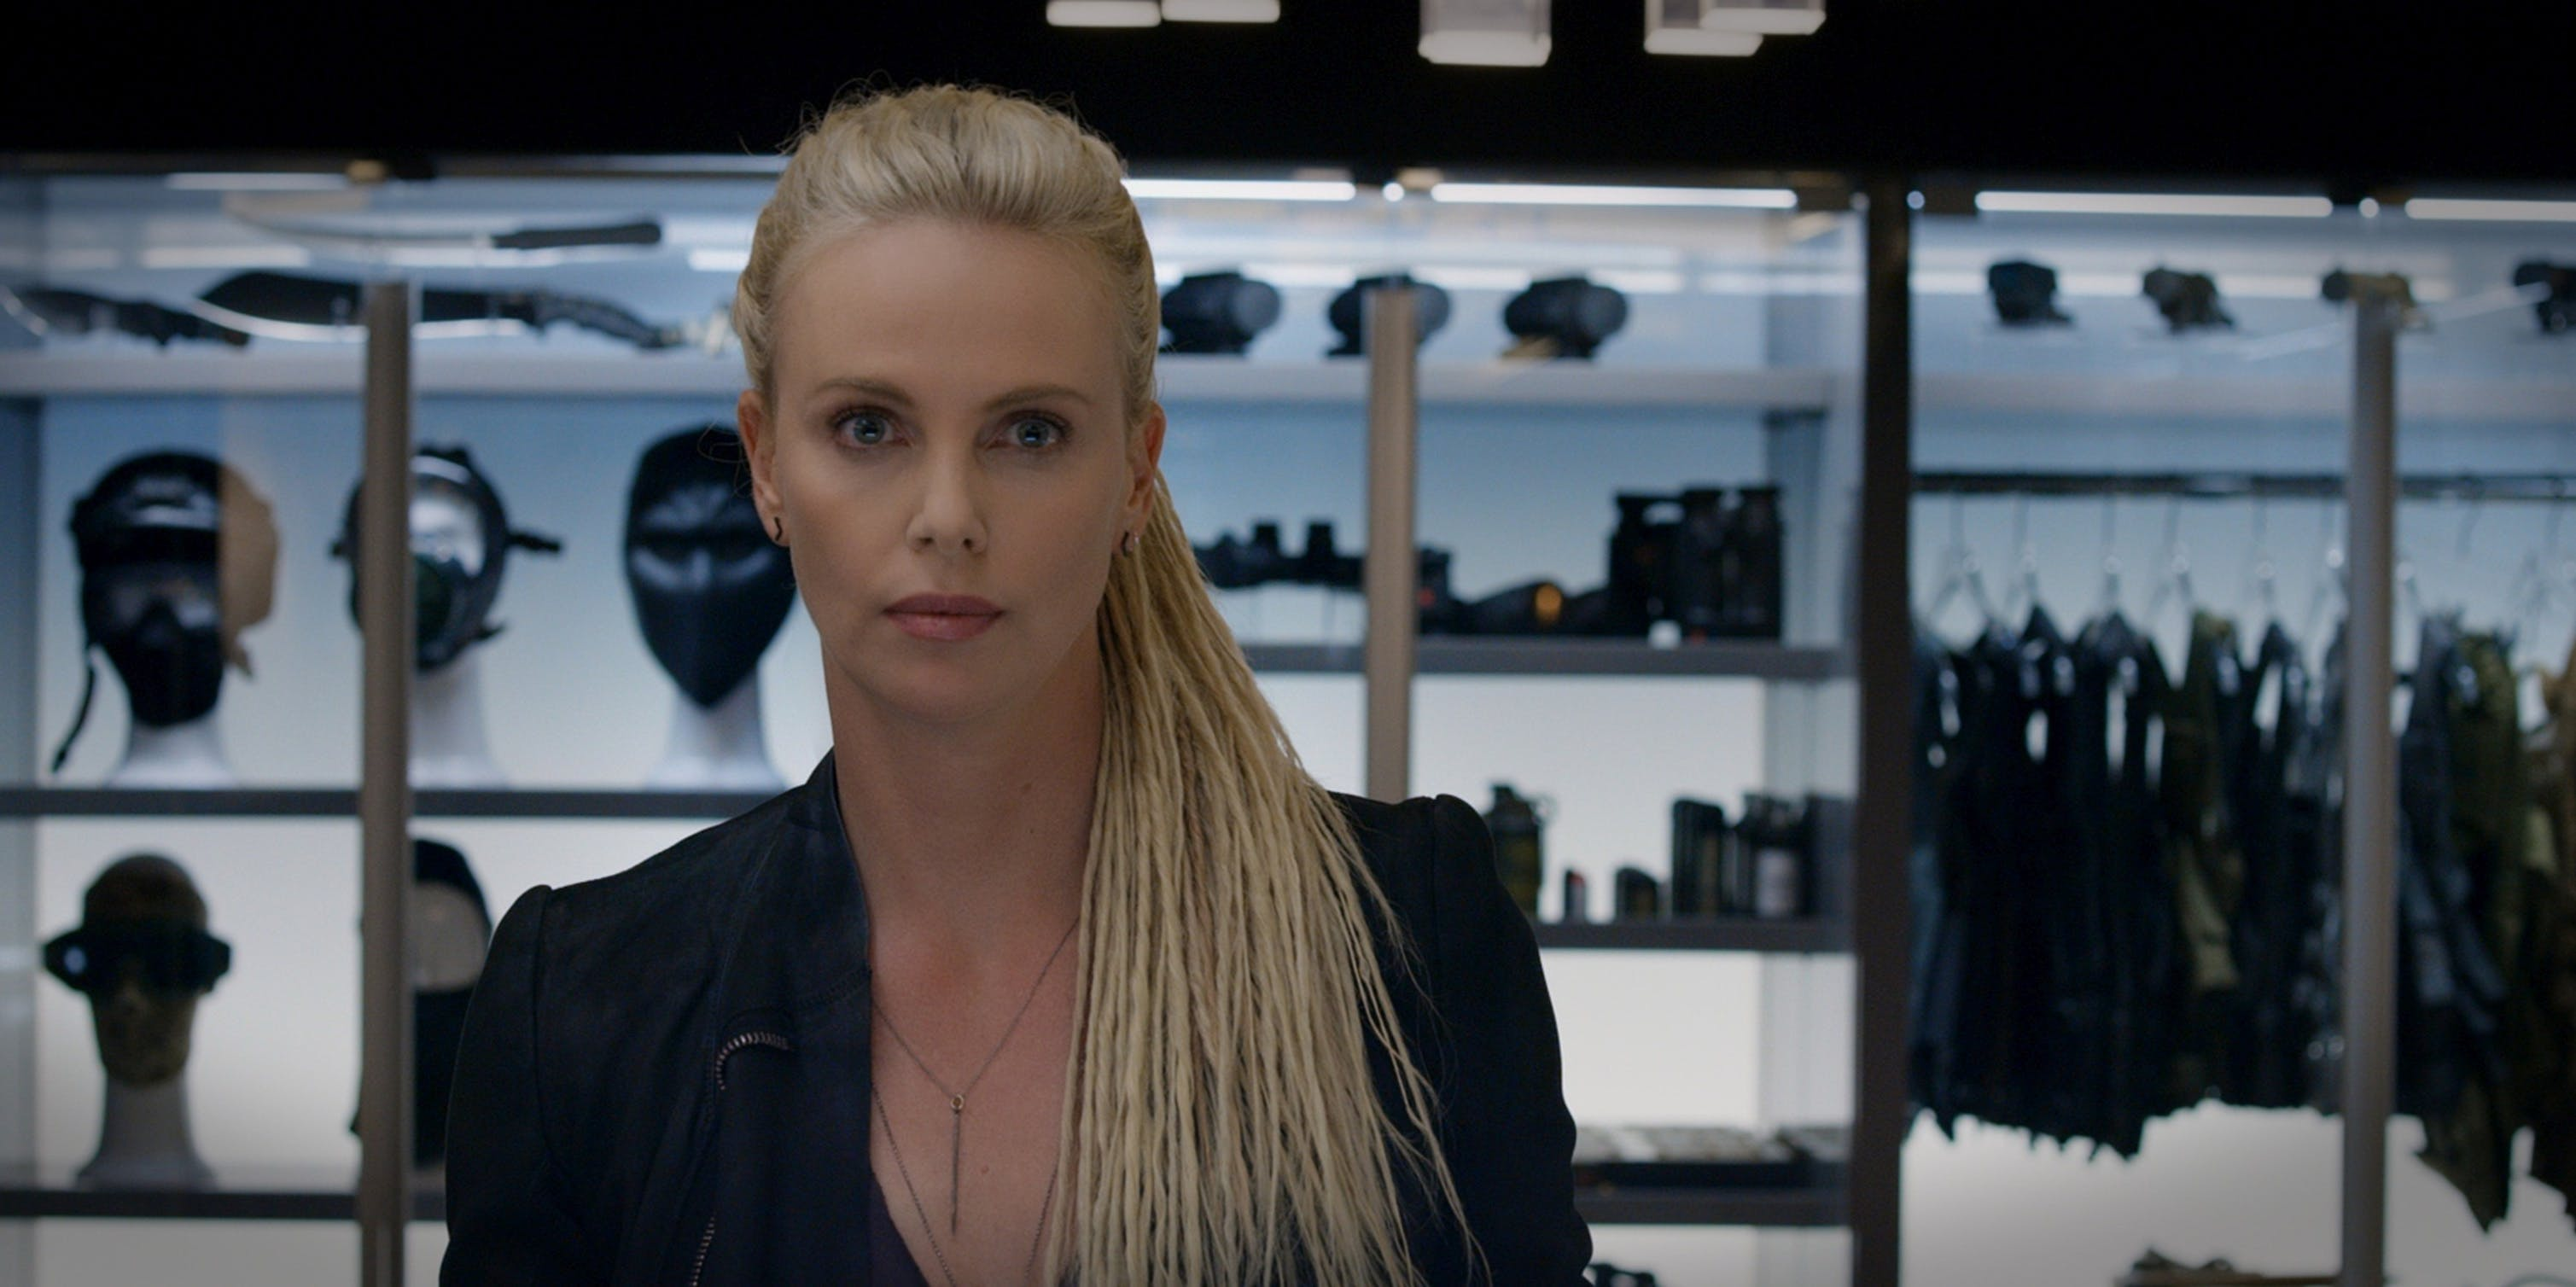 Charleze Theron as Cipher in 'The Fate of the Furious'